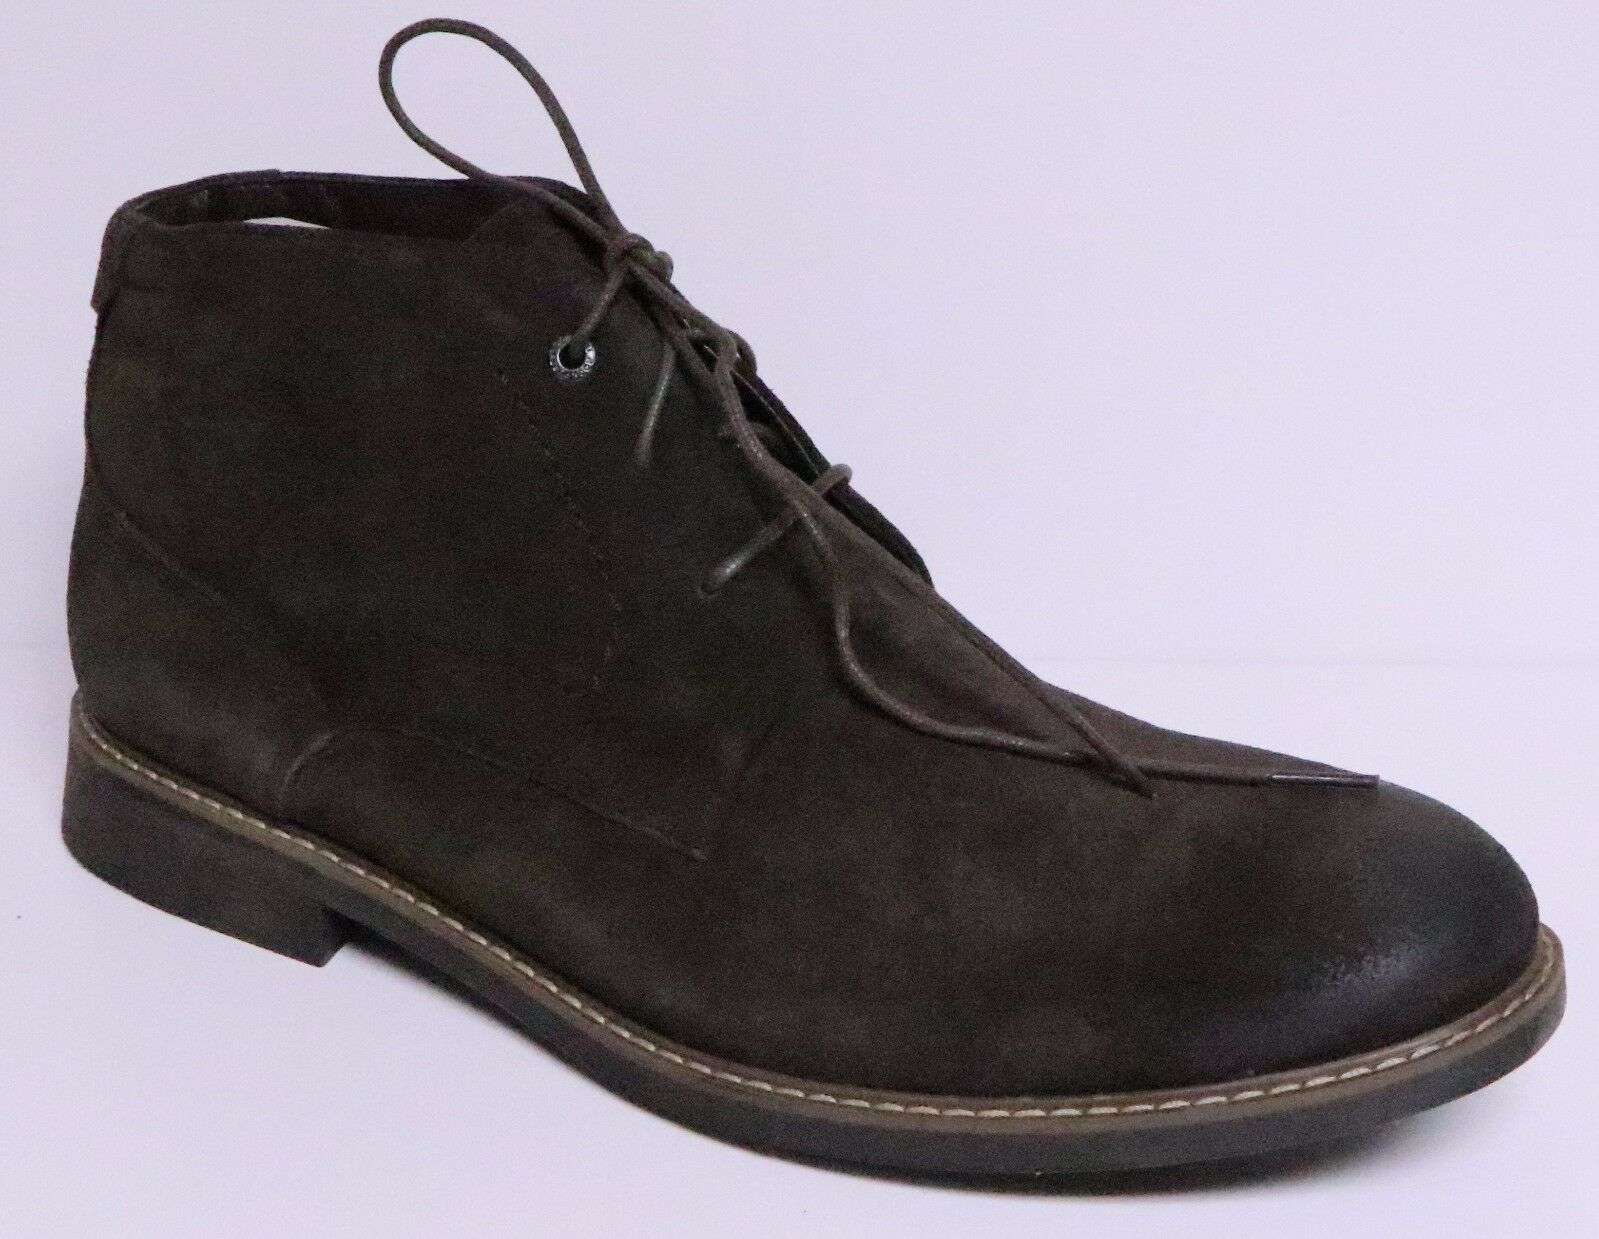 ROCKPORT CLASSIC BREAK MEN'S DARK BROWN SUEDE LEATHER CHUKKA BOOTS LACE UP NEW